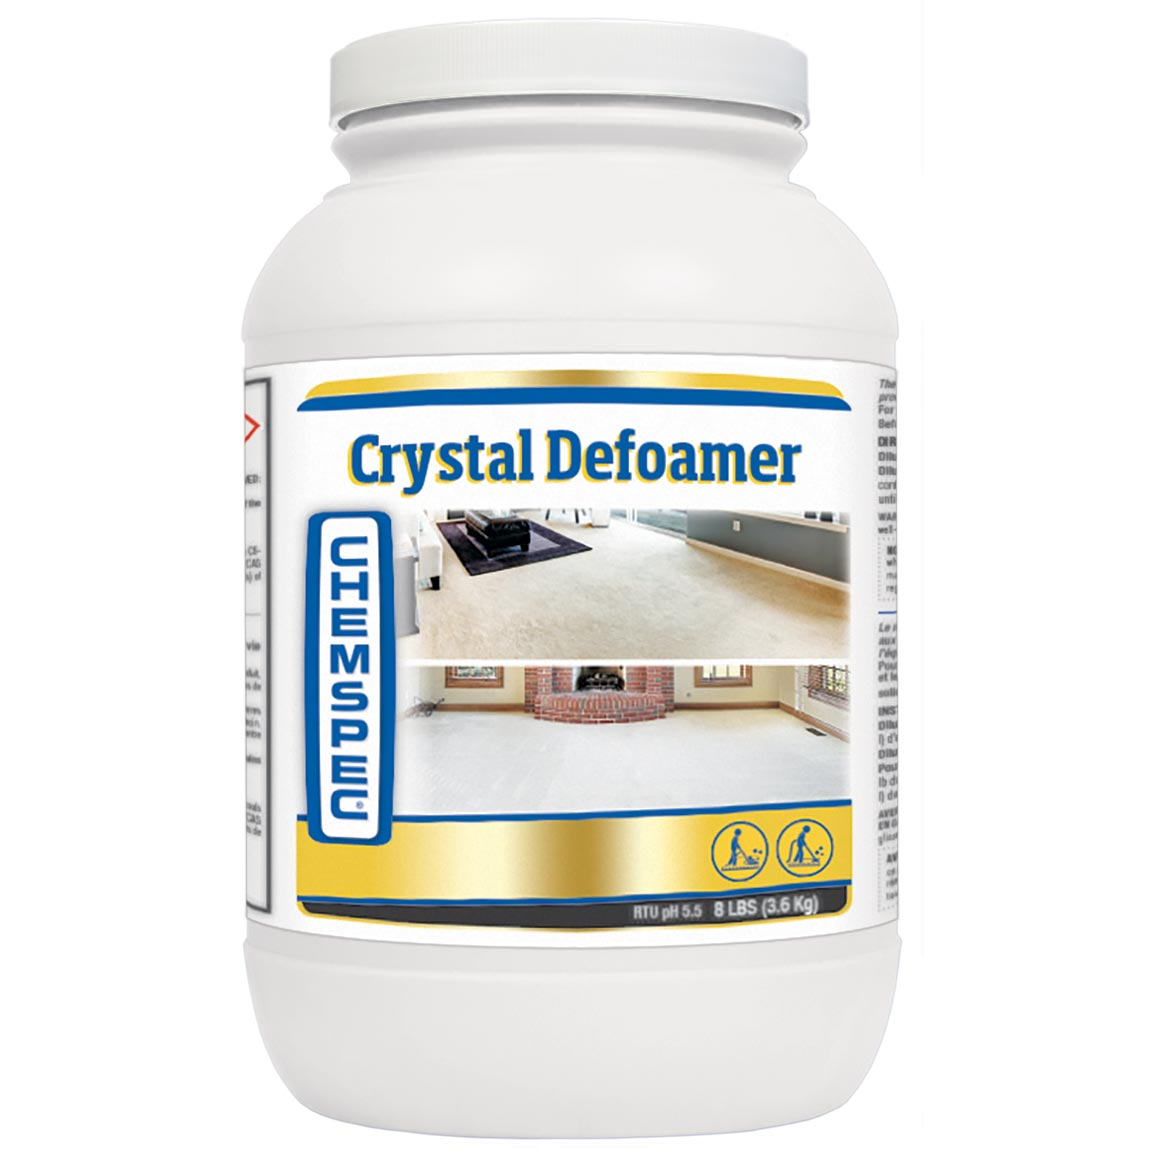 Chemspec C-CD32 Crystal Defoamer 4 X 8 lbs Jar CASE Powder Included Shipping Prevents Foam Build Up